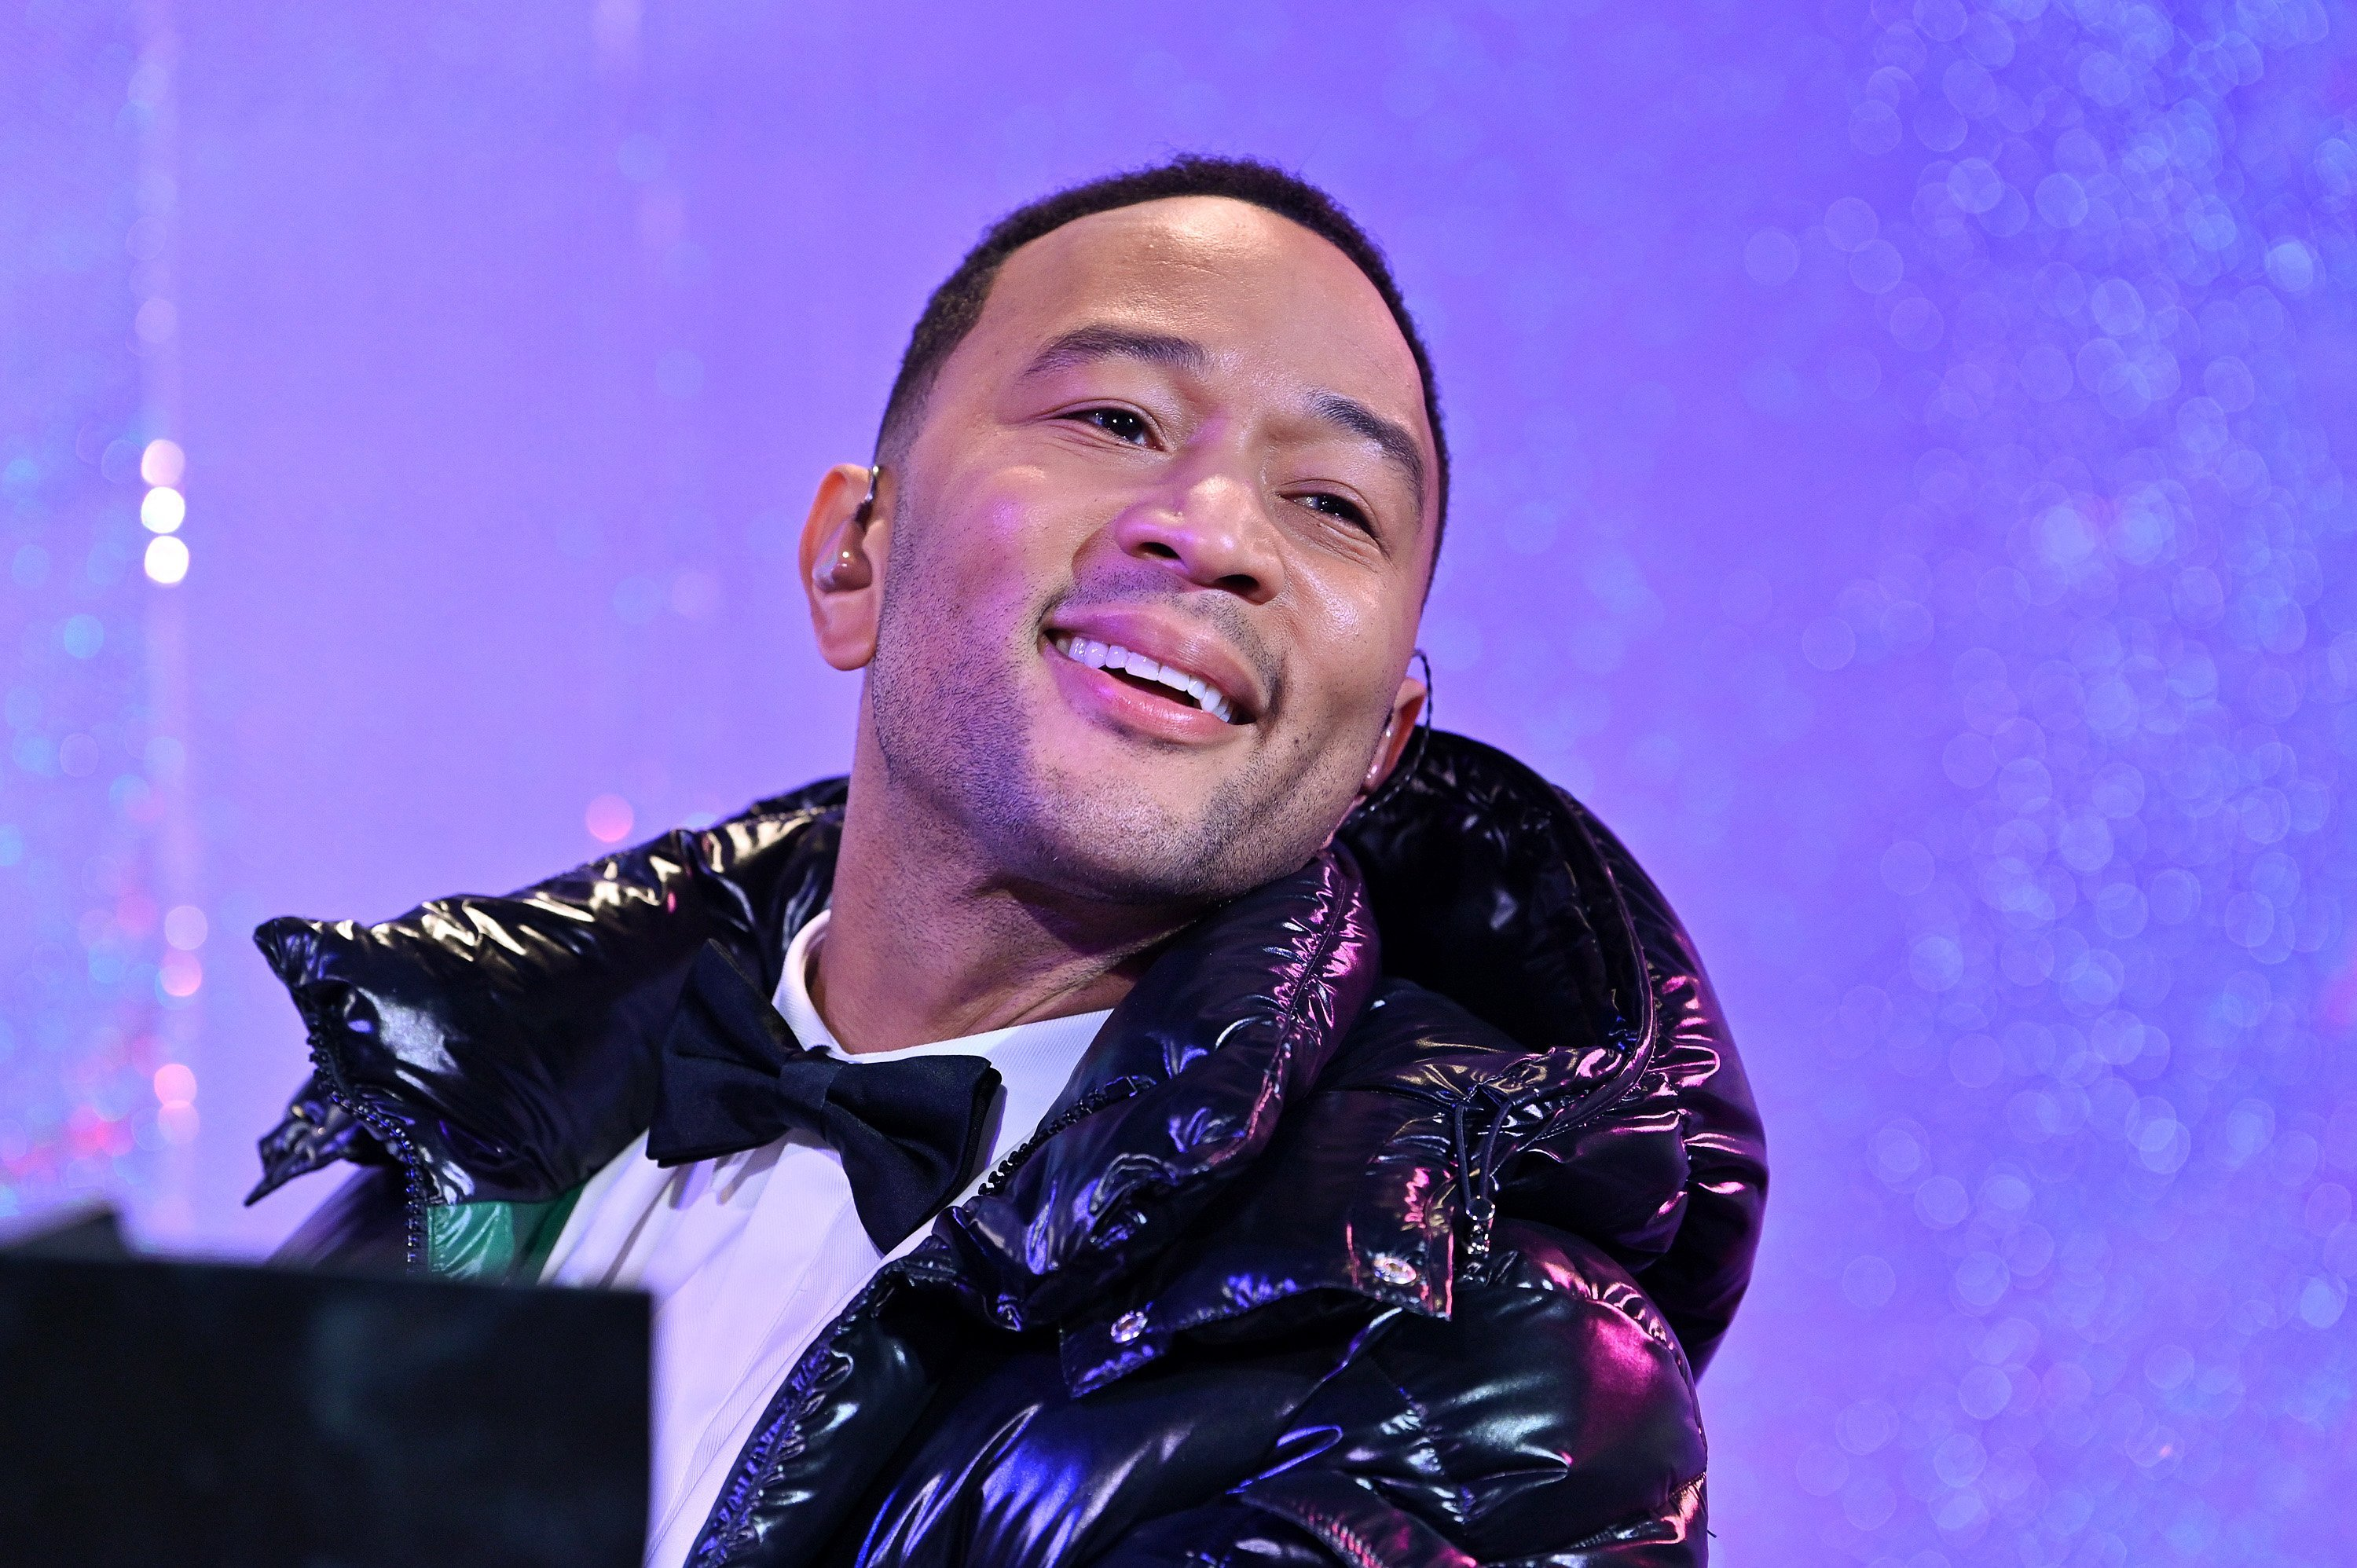 John Legend performs onstage at Bloomingdale's holiday windows unveiling at Bloomingdale's 59th Street Store on November 22, 2019, in New York City. | Source: Getty Images.